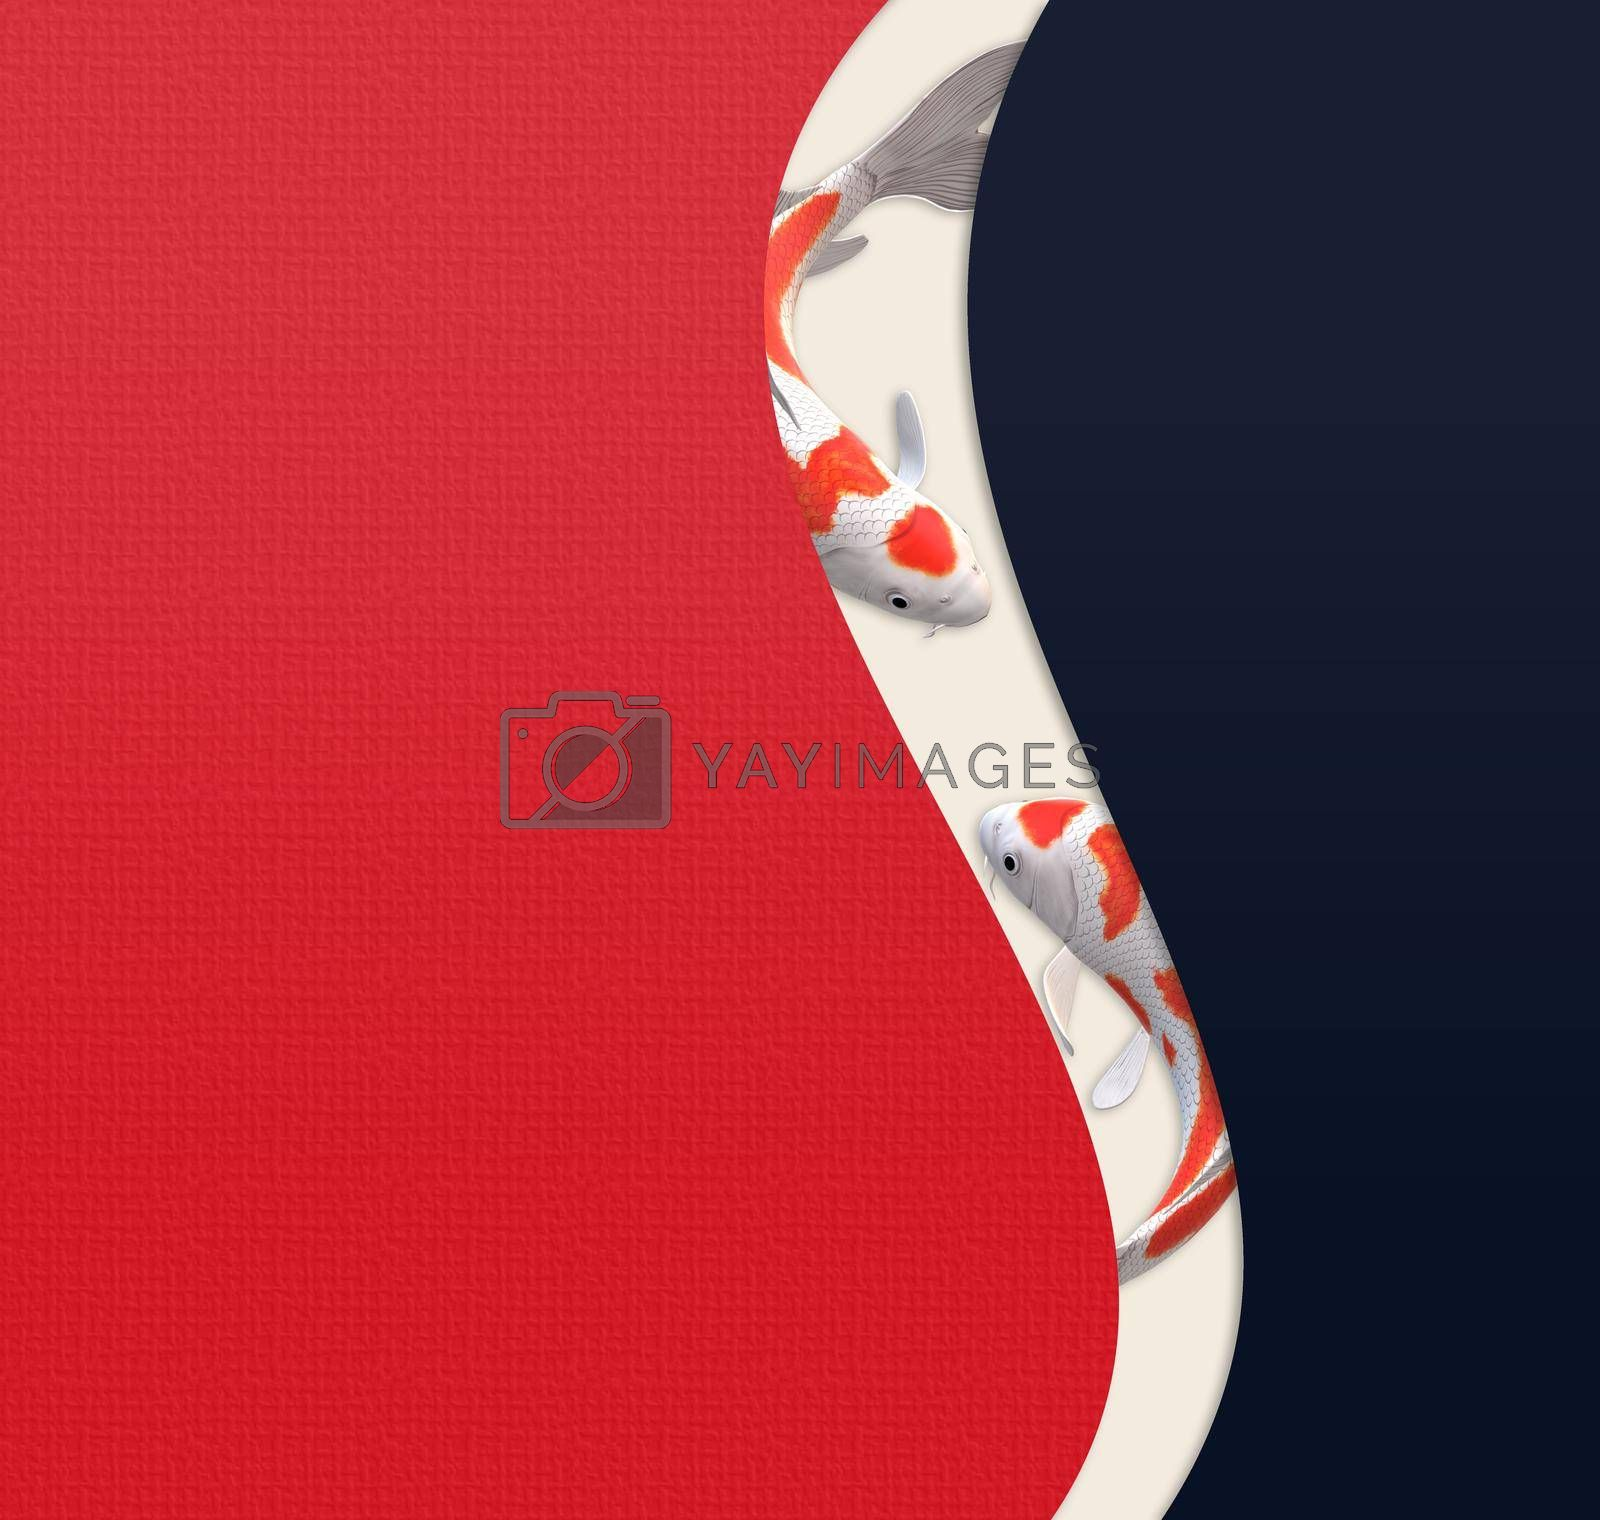 Koi carp fish, abstract minimalist design, oriental style. Chinese style background with koi carp fishes on red blue curves background. 3D illustration